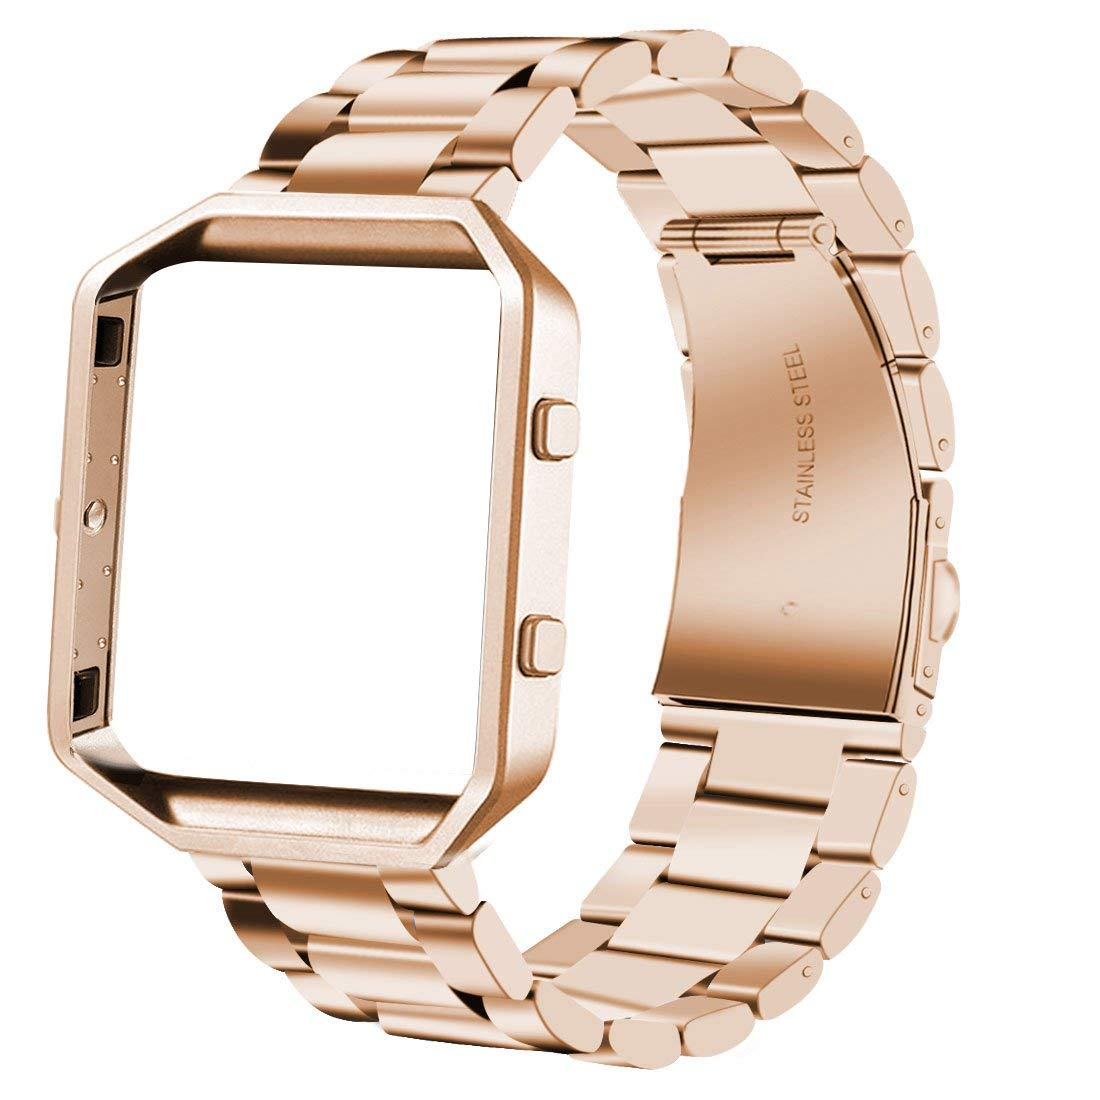 iiteeology Compatible Fitbit Blaze Bands Stainless Steel with Frame, Small Large Smart Watch Band Strap for Fitbit Blaze Smart Fitness Watch Women Men (Rose Gold + Rose Gold)